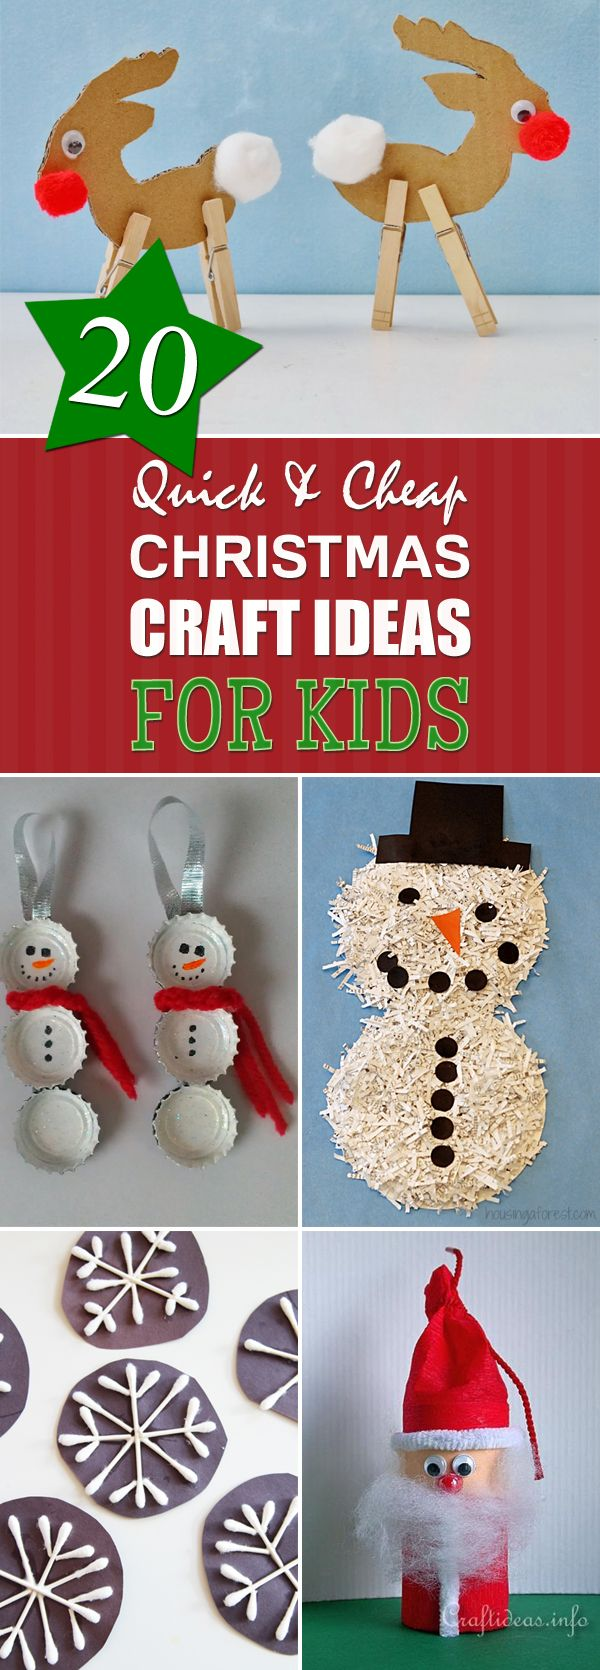 Quick Christmas Crafts For Adults.20 Quick And Cheap Christmas Craft Ideas For Kids Diy And